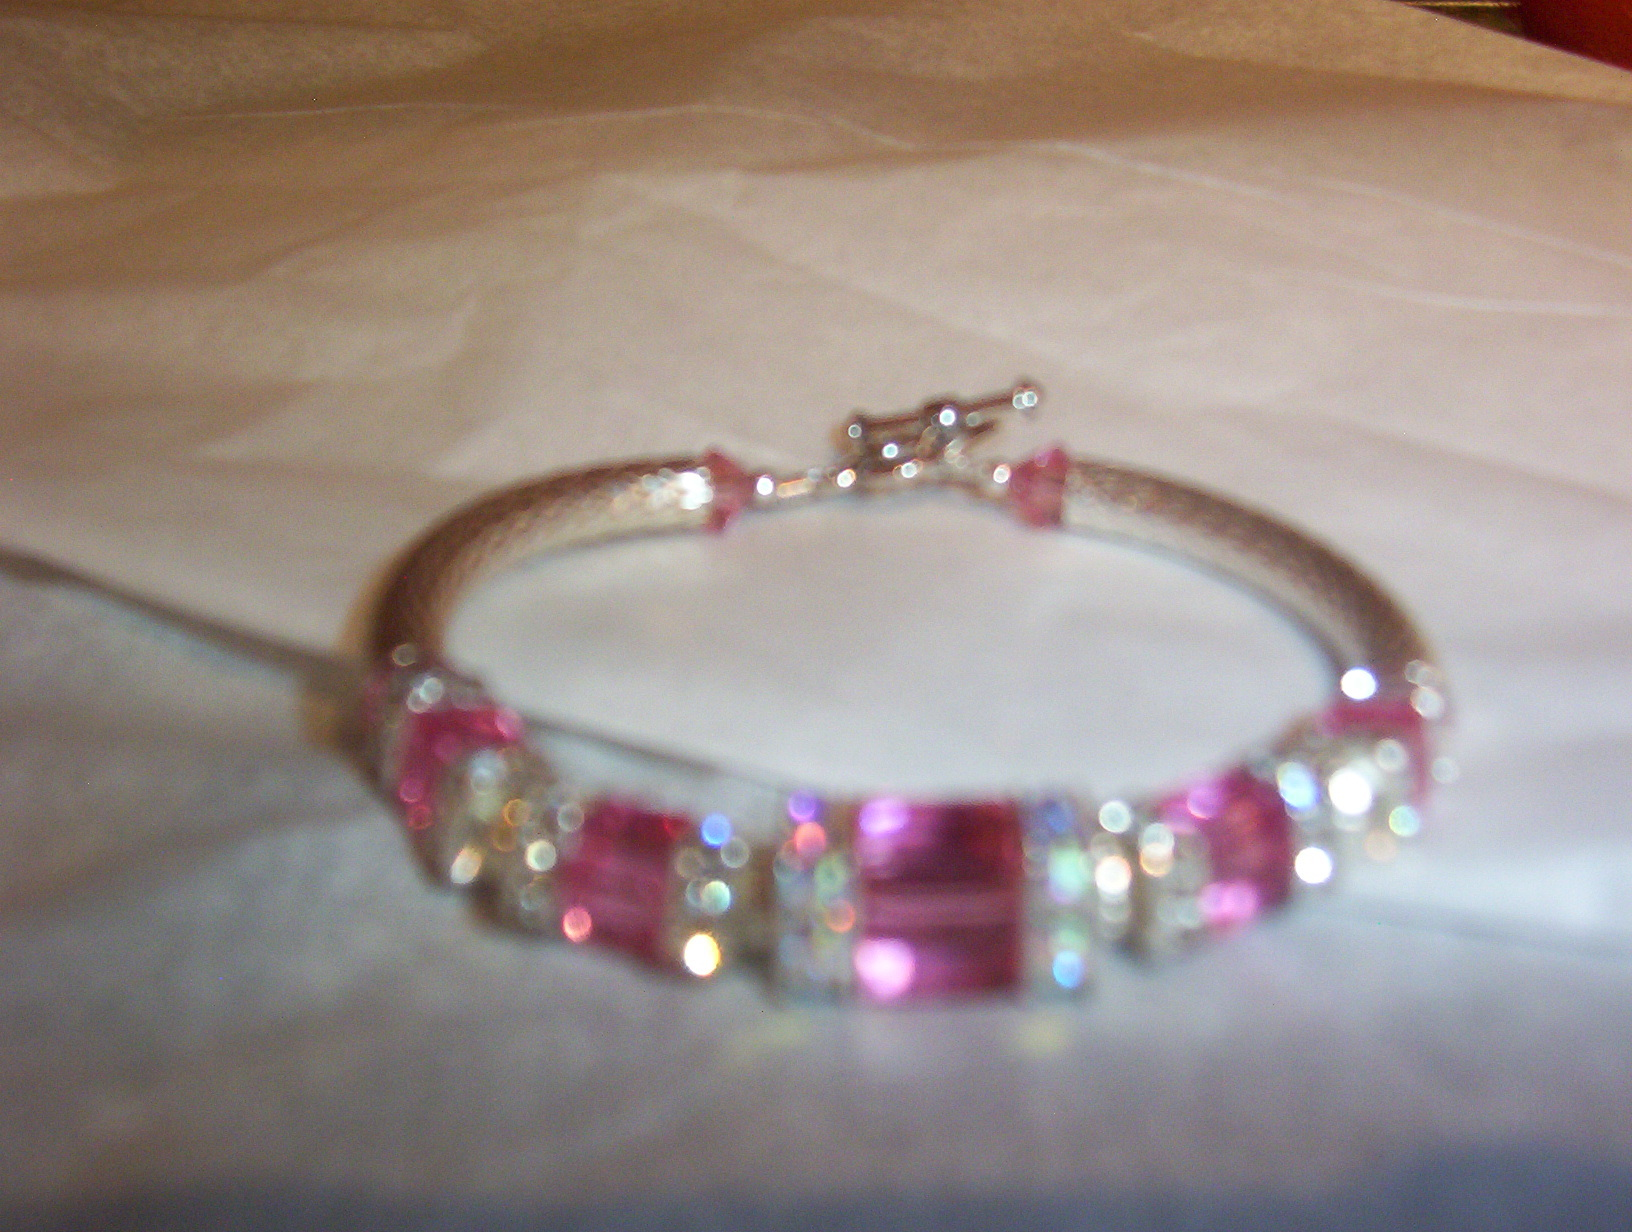 Jewelry, Bracelets, Bracelet, Swarovski, Rhinestone, Crystals, Seaside jewelry designs